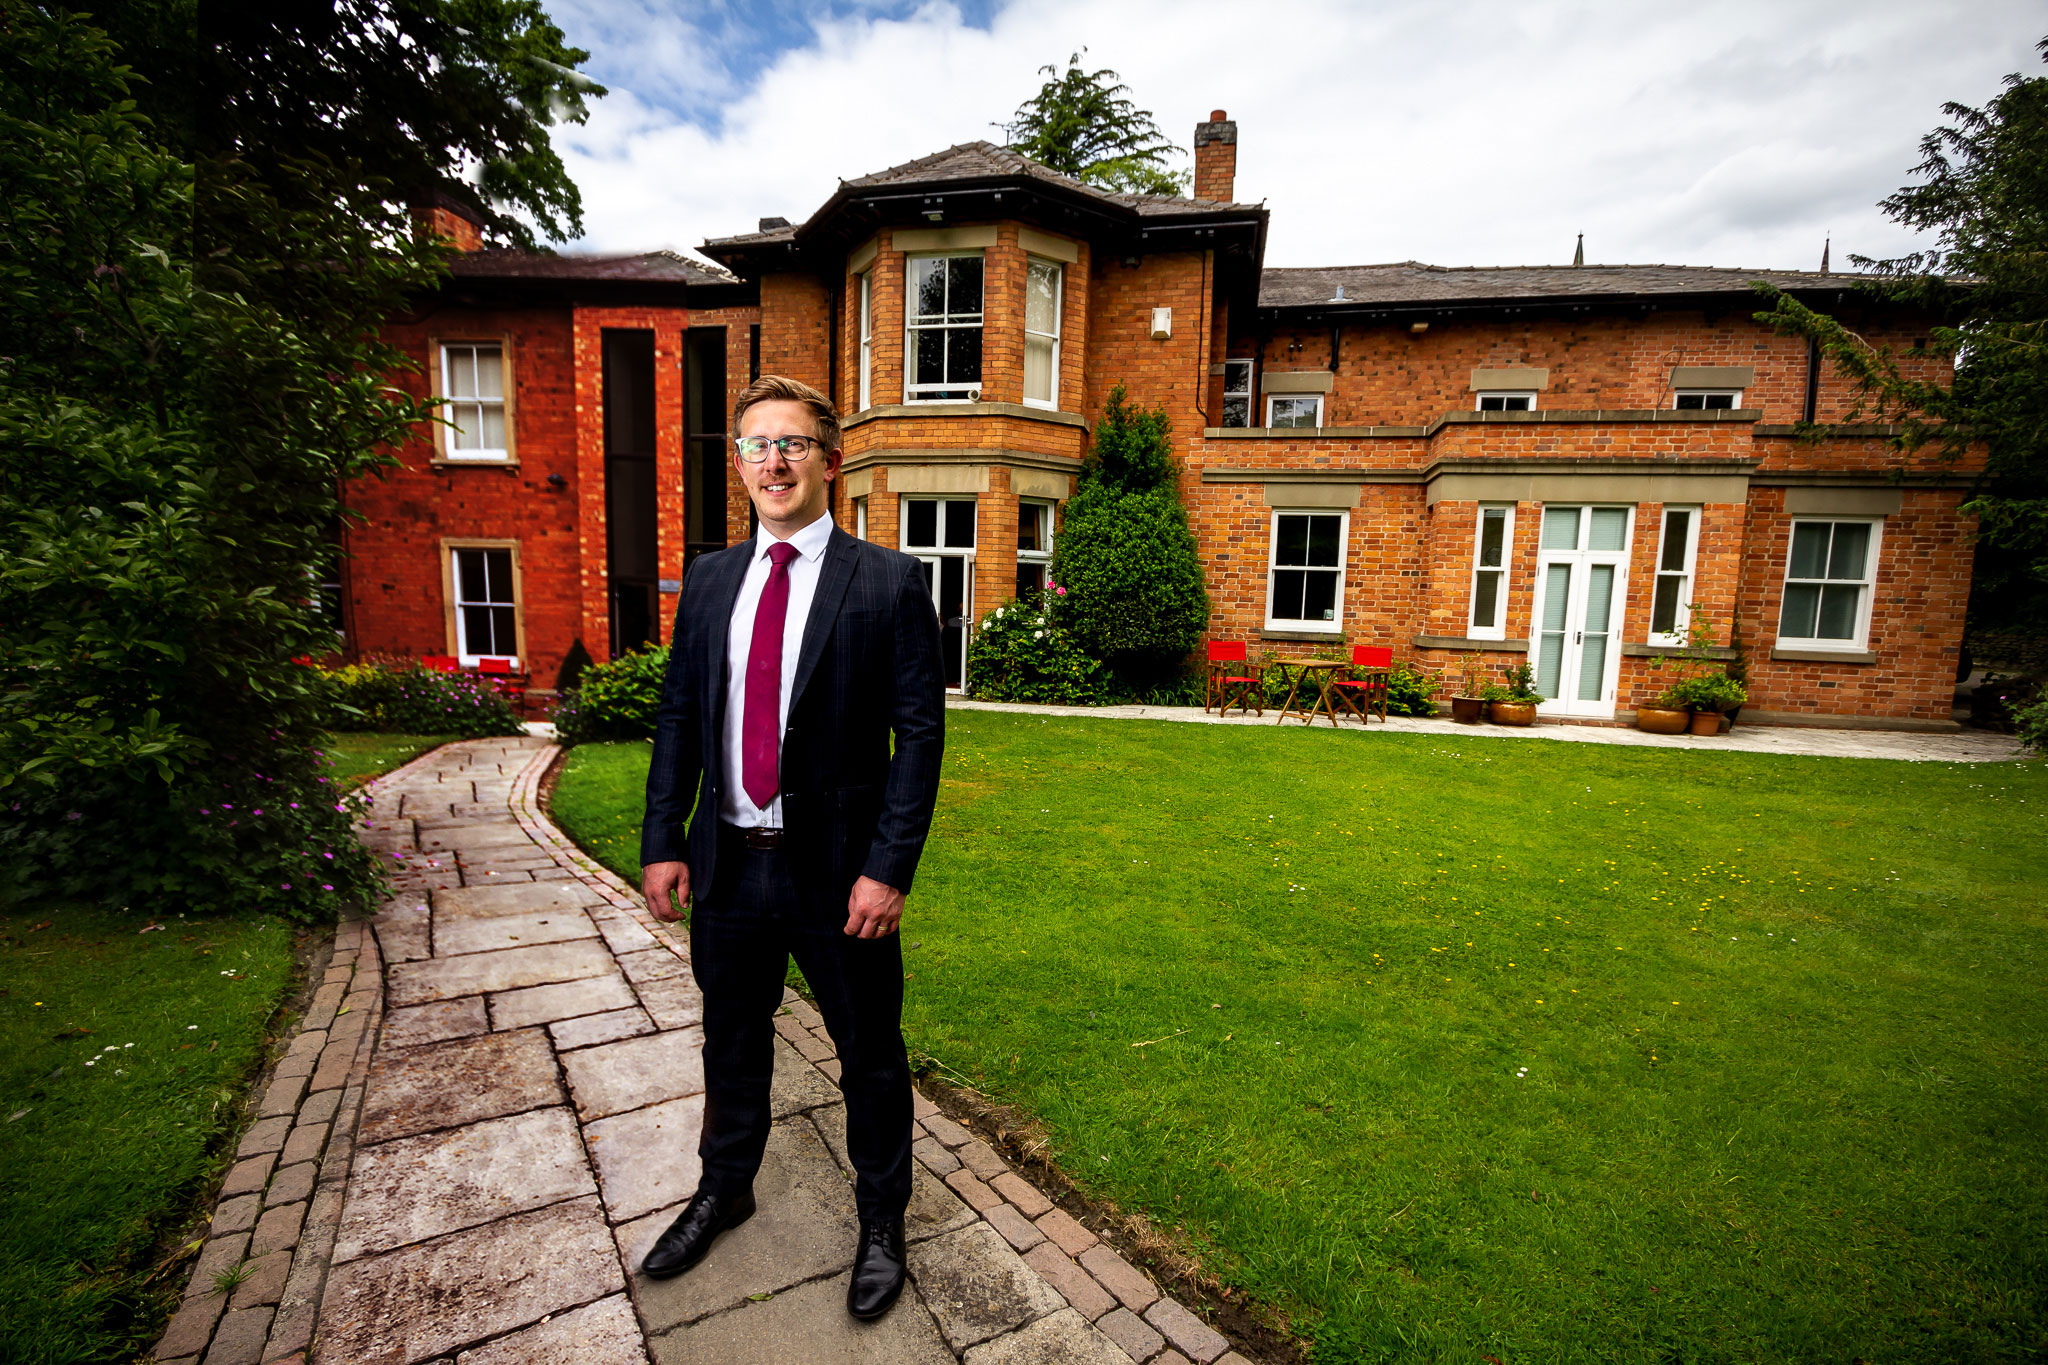 Rich West at Cerda Planning new East Midland Office